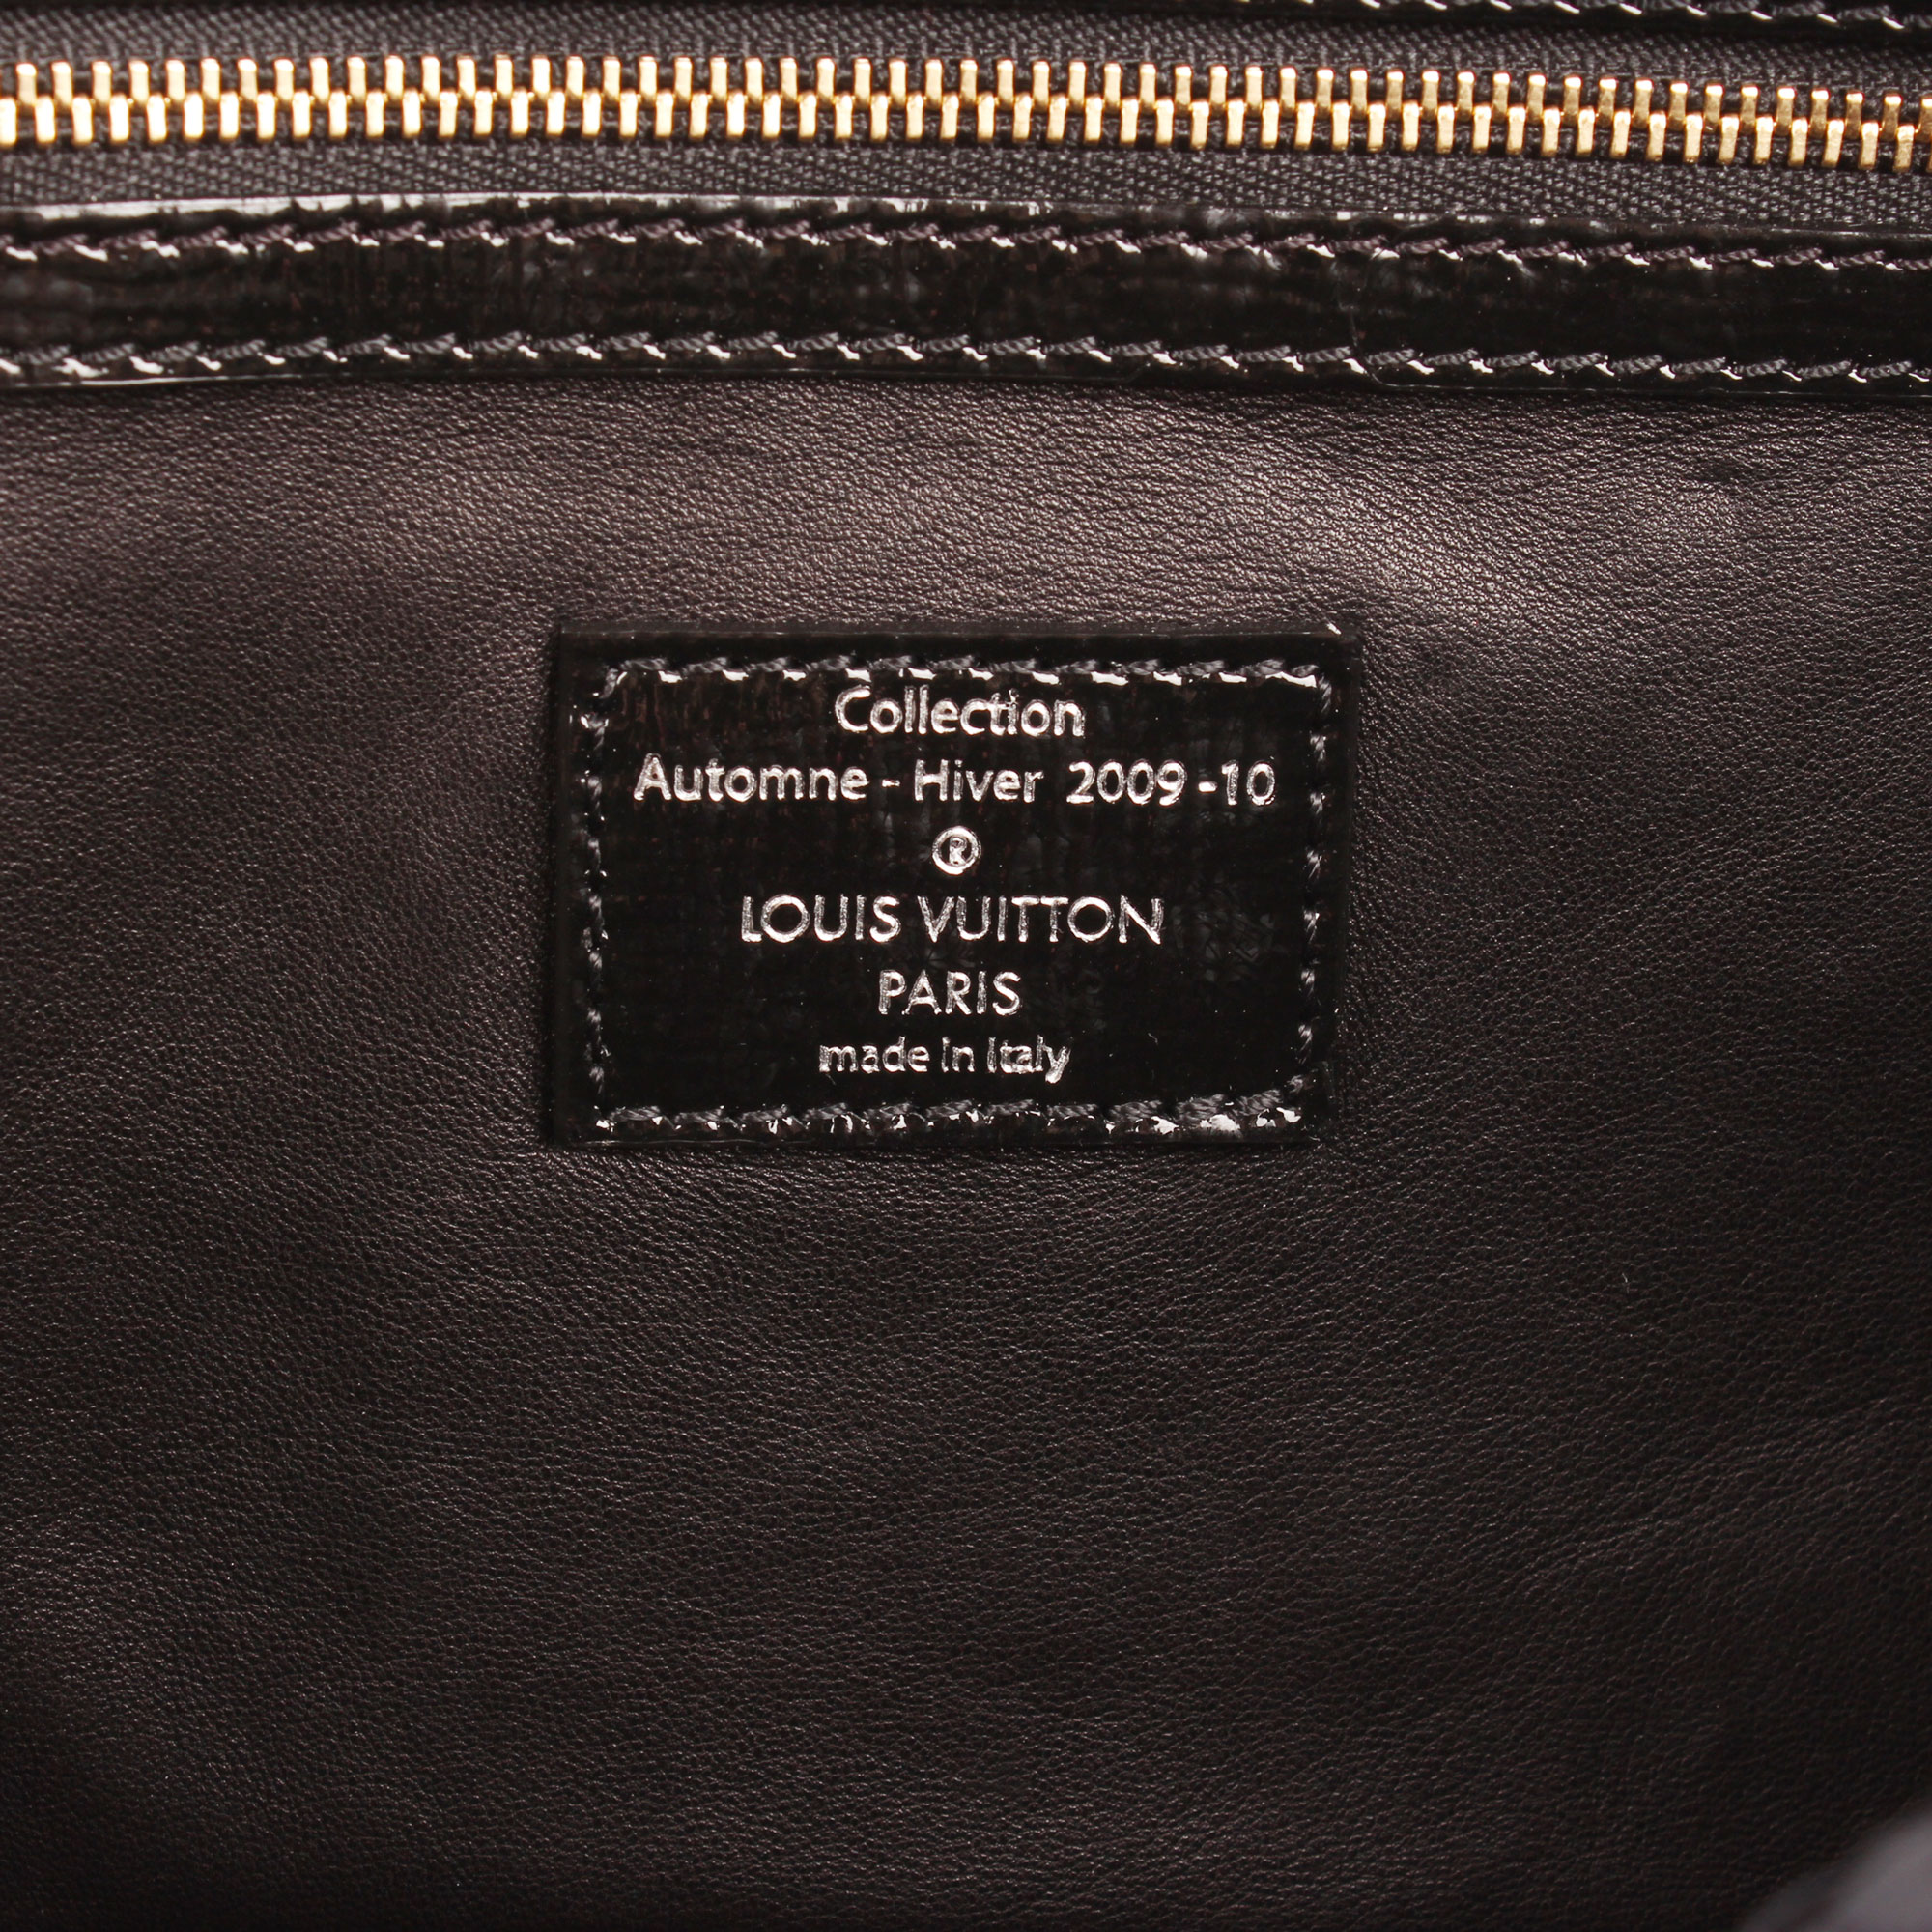 Interior tag of louis vuitton coquette embossed monogram navy blue fabric leather clutch bag